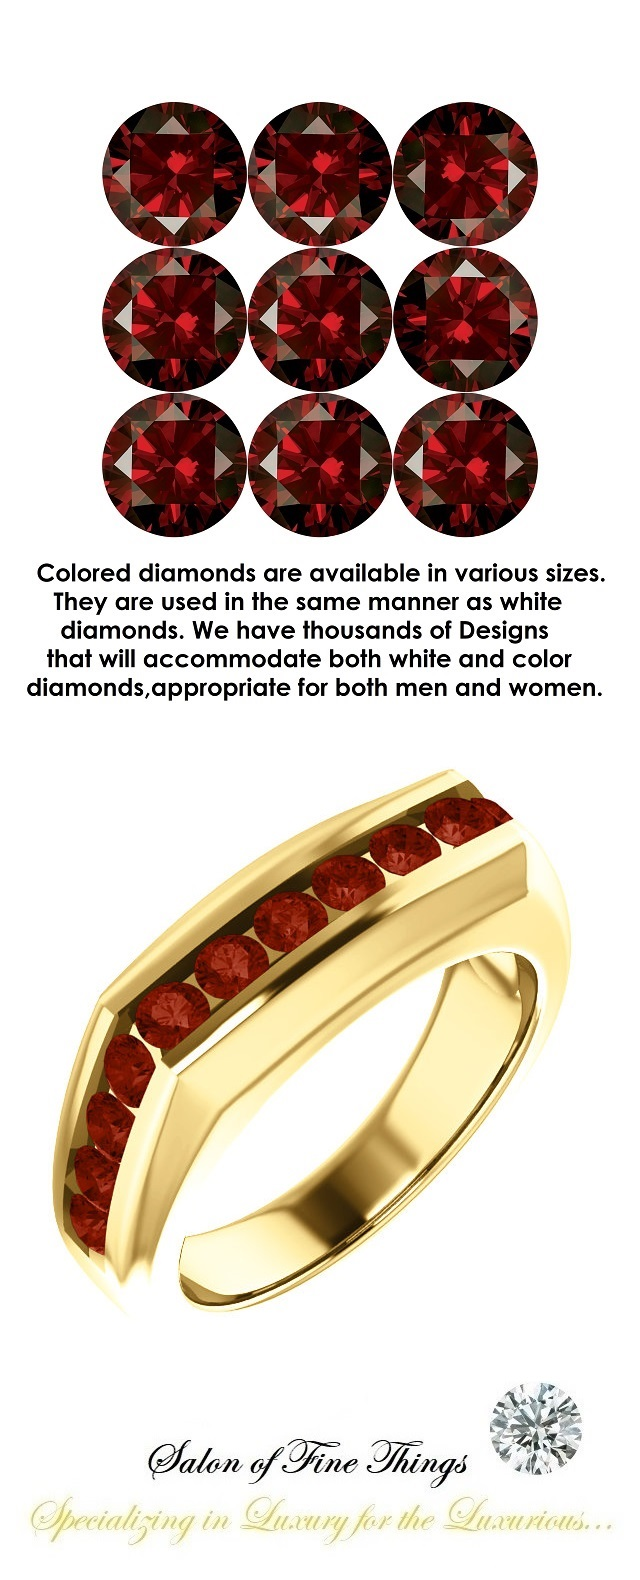 1.40-carat-red-round-diamonds-color-enhanced-mined-diamonds-18-karat-yellow-gold-ring-guydesign-men-s-colored-diamond-ring-10349.5189.5-1.jpg